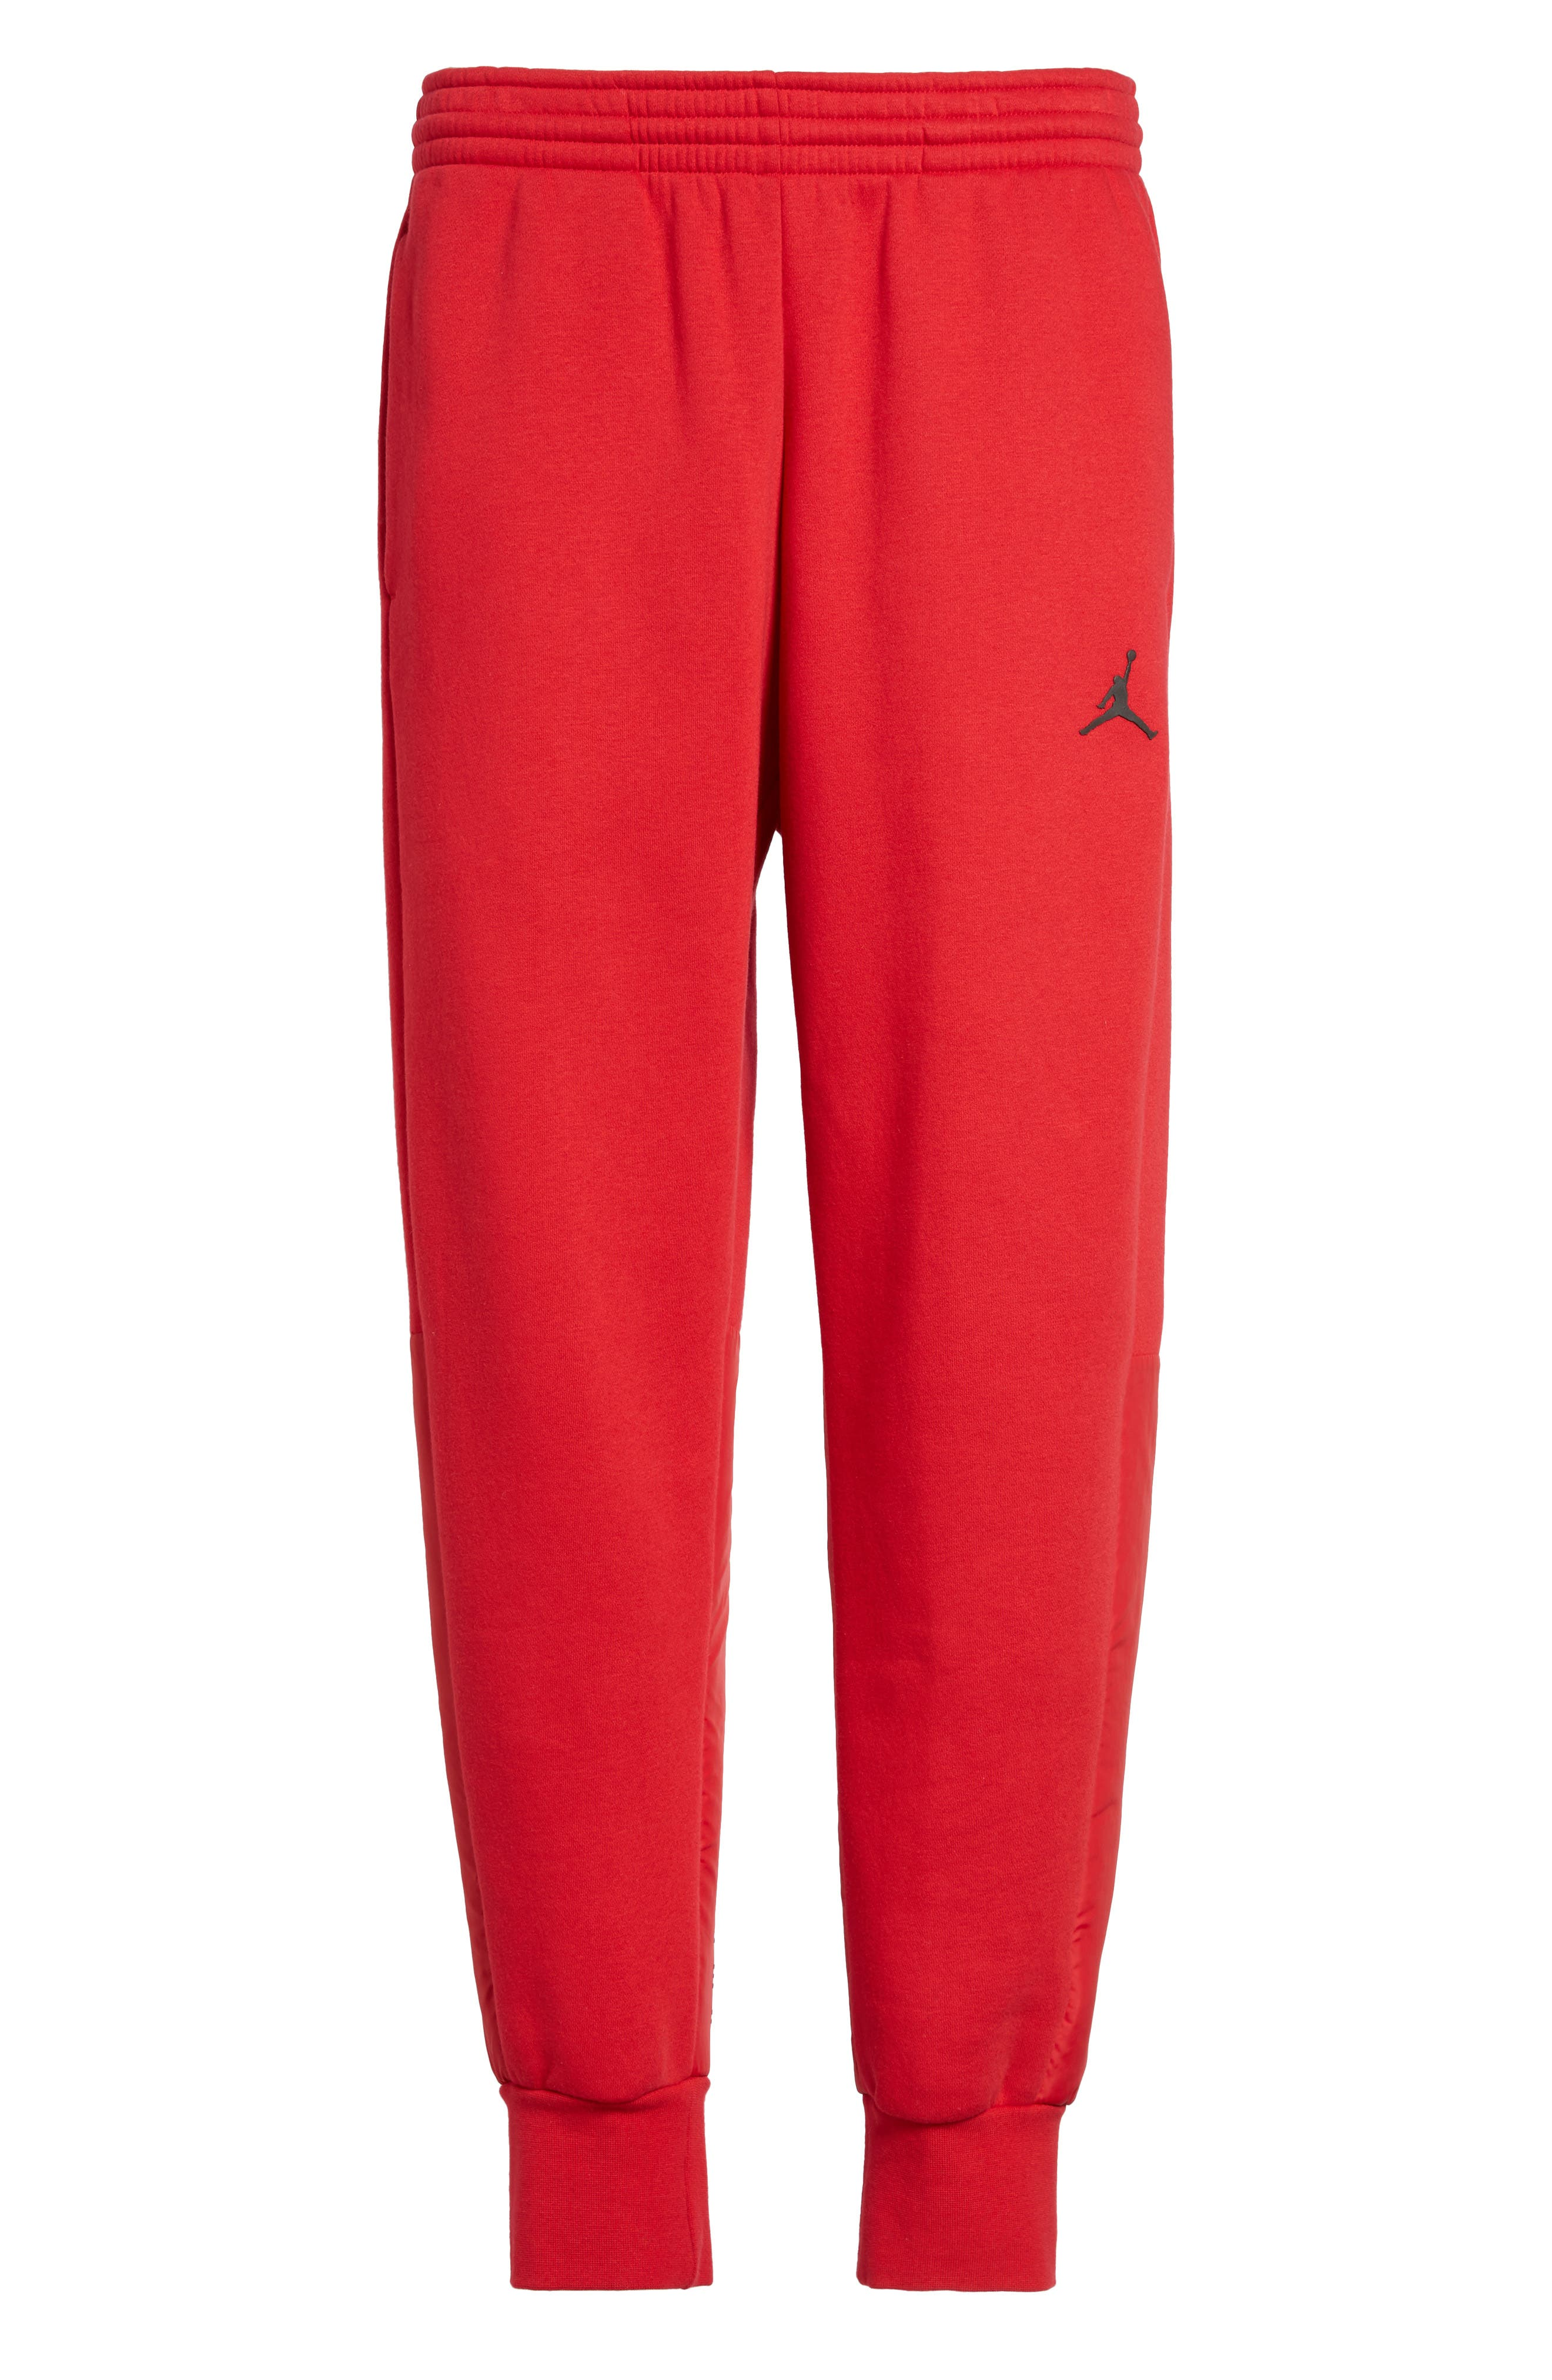 Jordan AJ11 Hybrid Pants,                             Alternate thumbnail 6, color,                             Gym Red